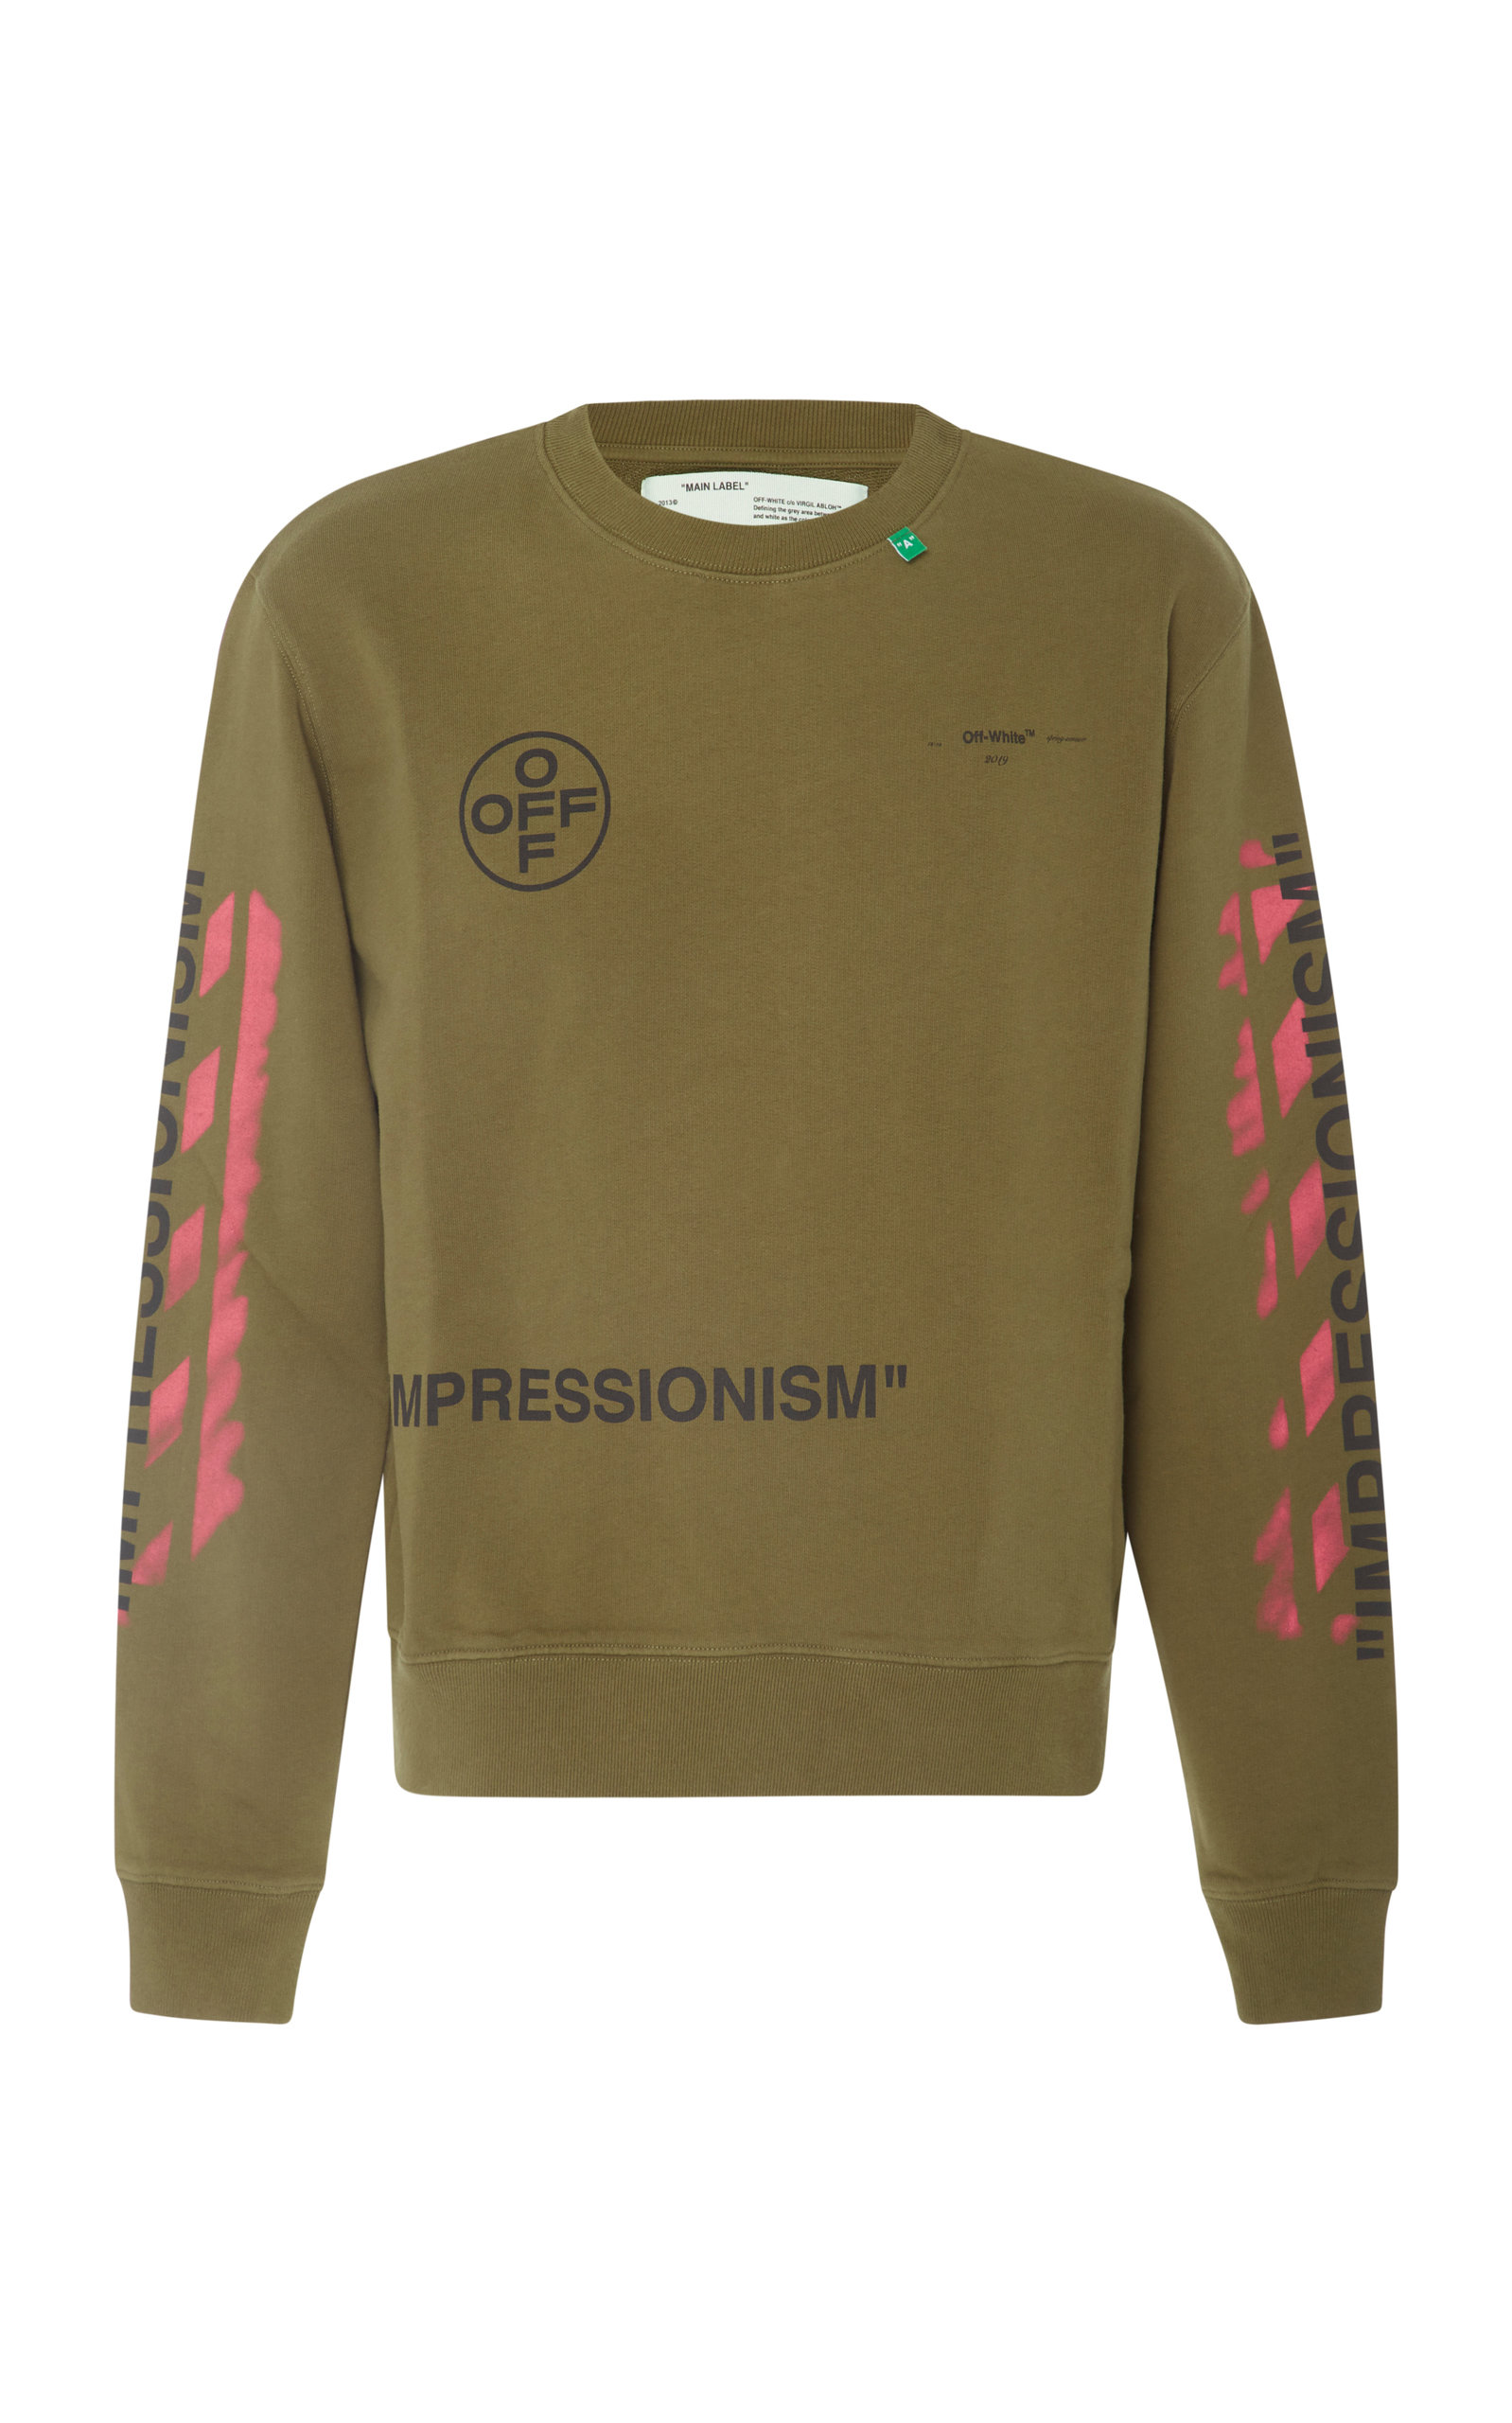 deede8c3ef0f Printed Long Sleeve T-Shirt by Off-White c o Virgil Abloh